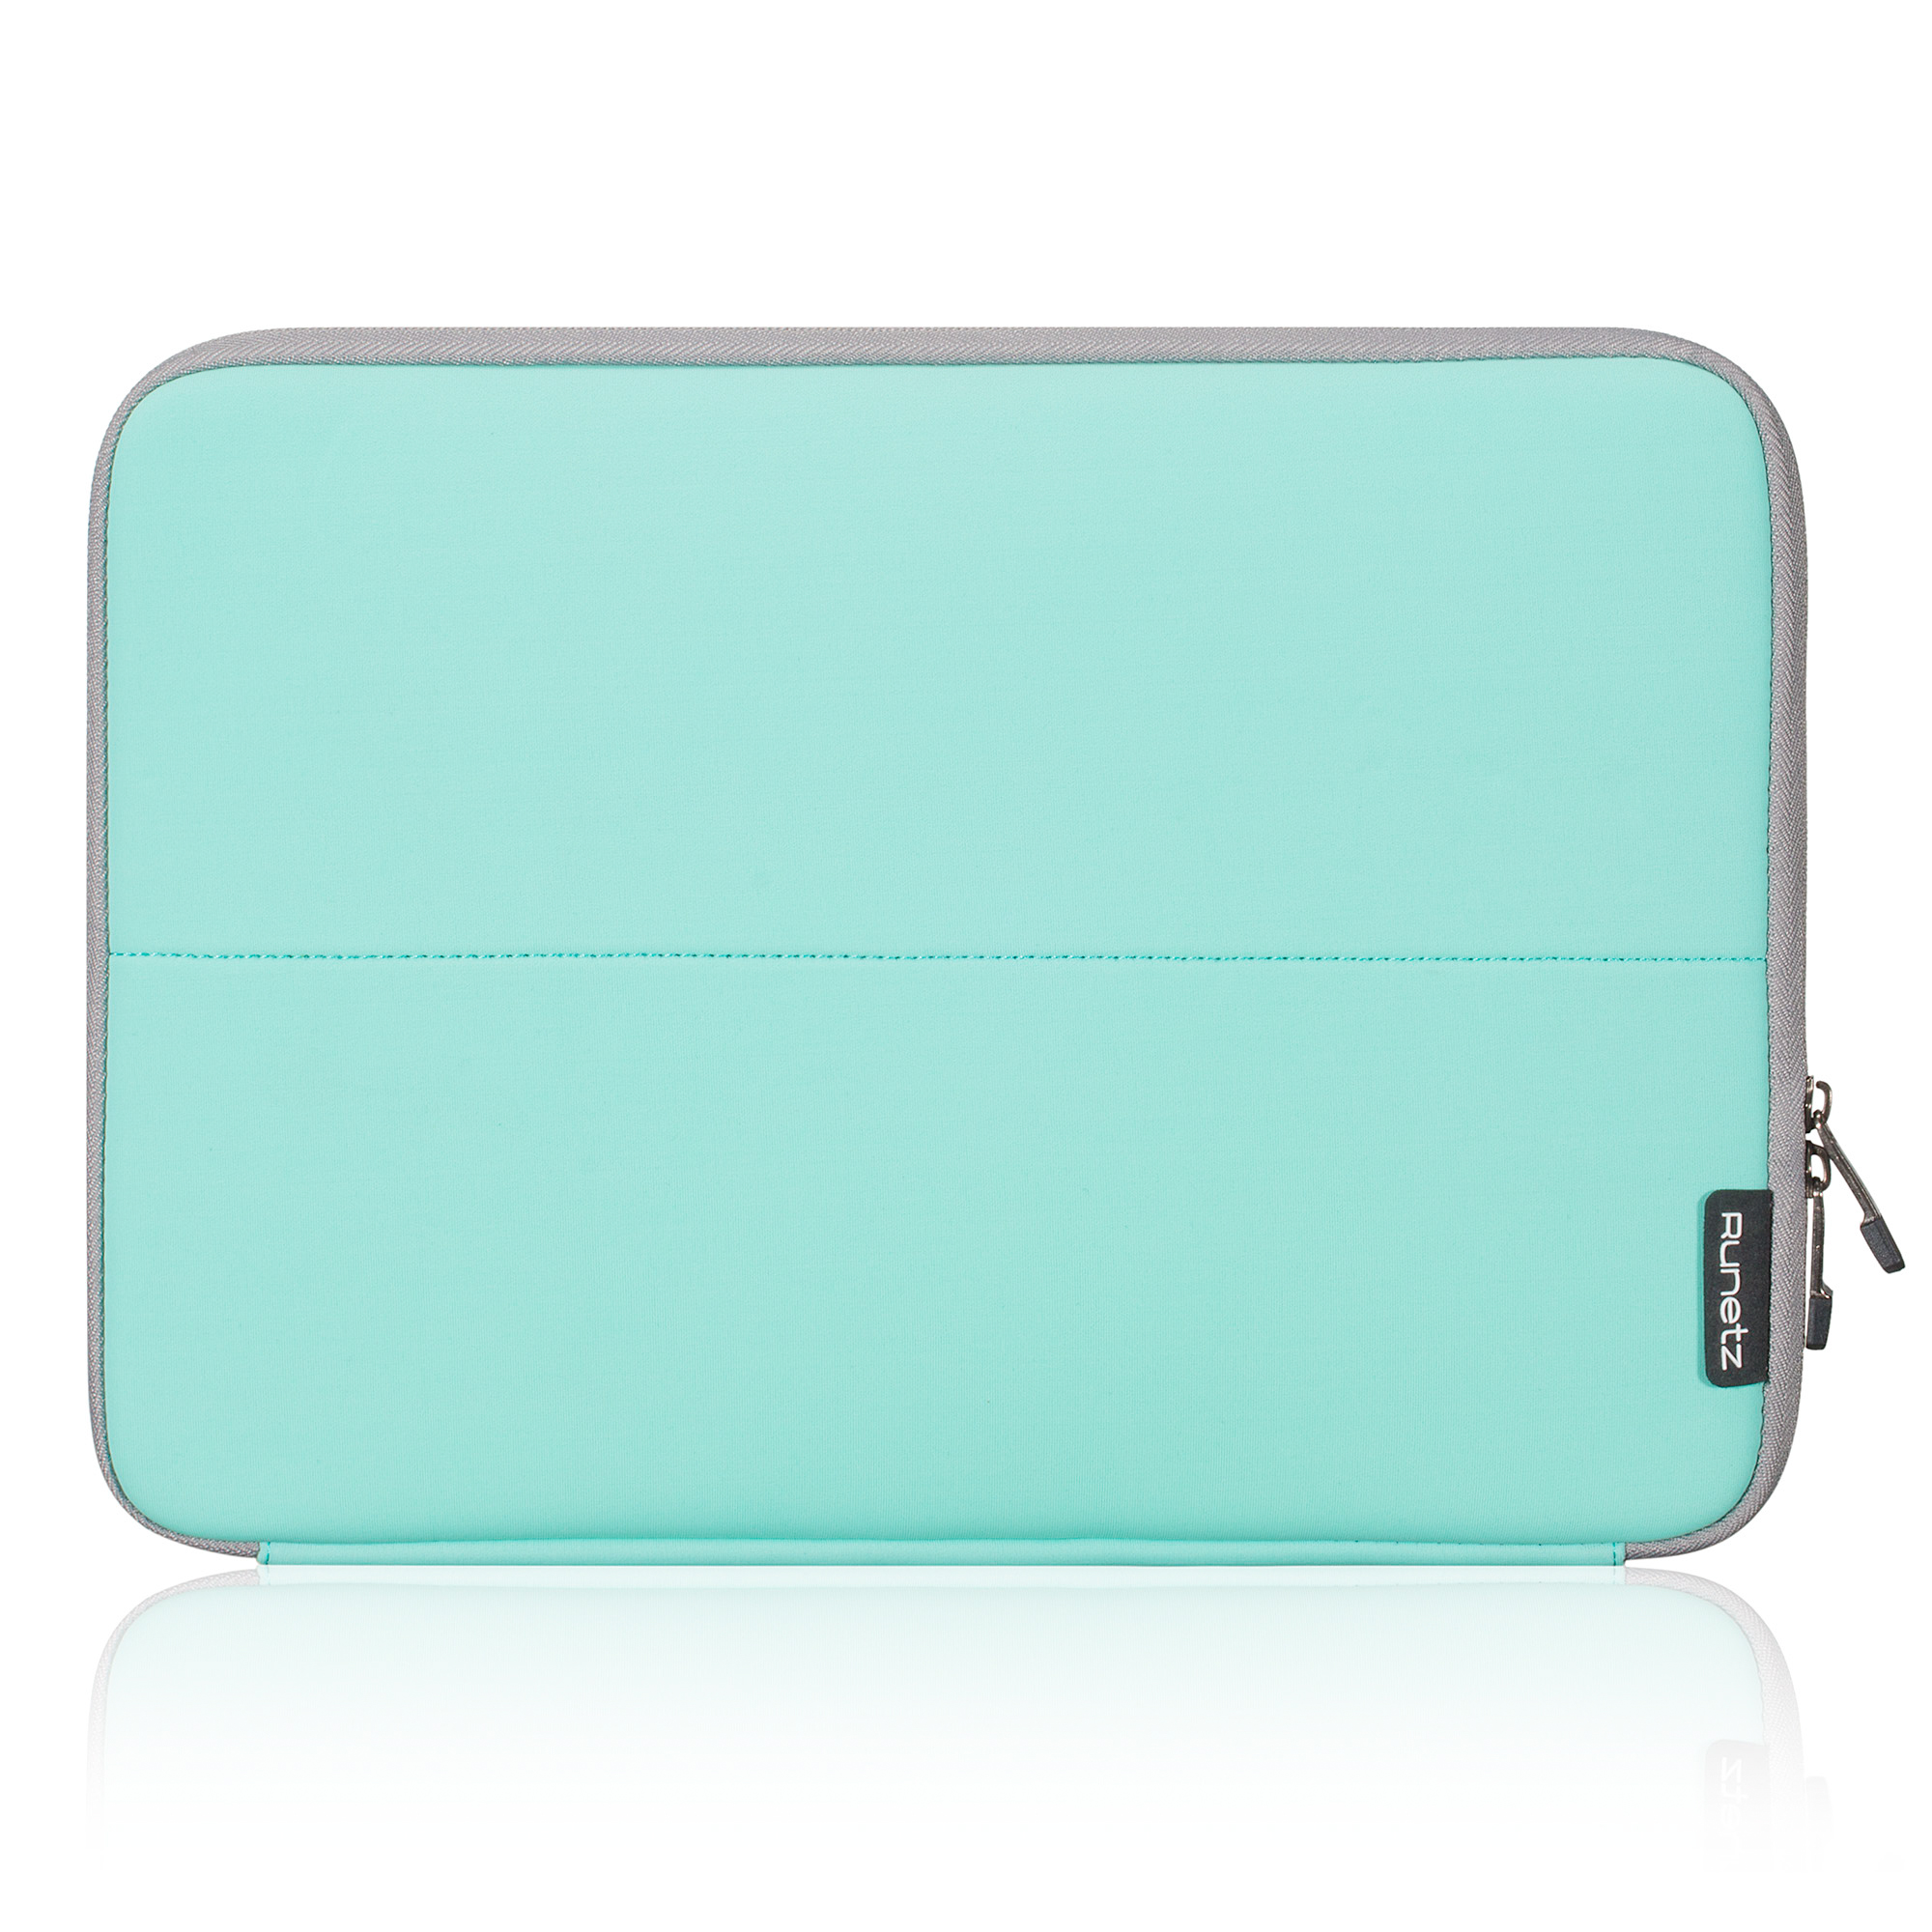 Housse neoprene macbook pro 13 28 images macbook for Housse neoprene ipad air